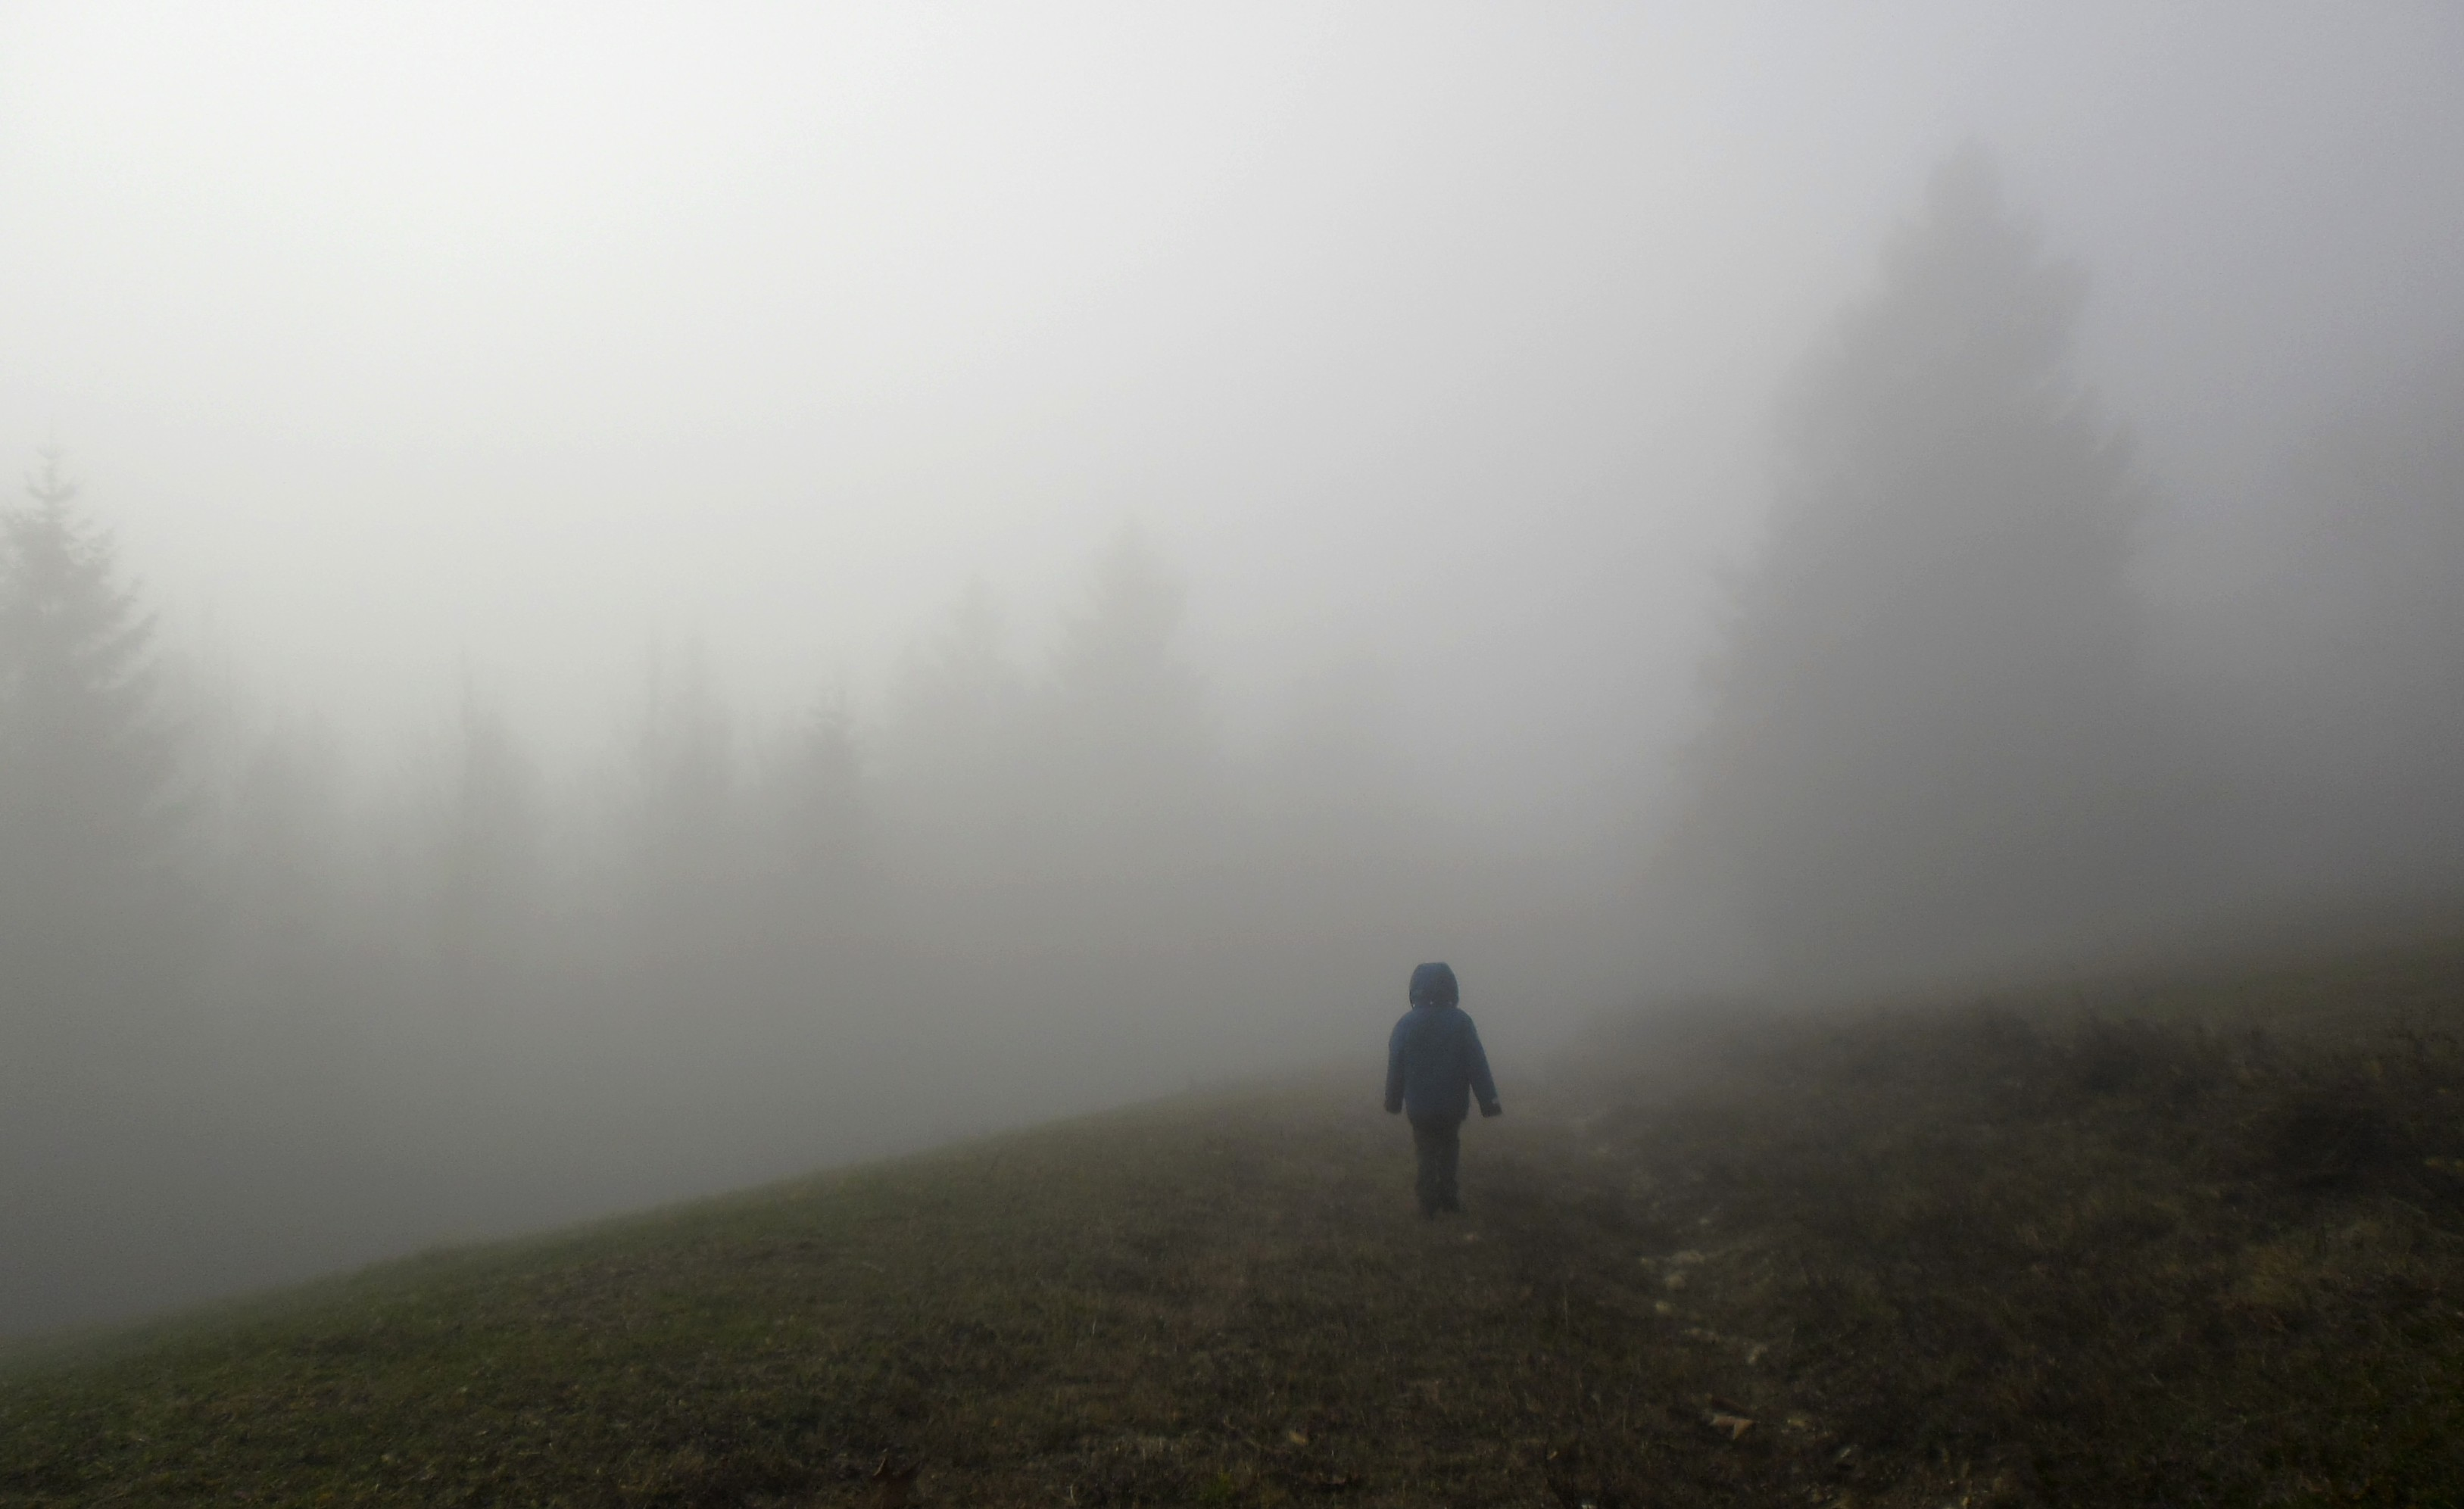 D walking into the mist | Field Notes From Fatherhood